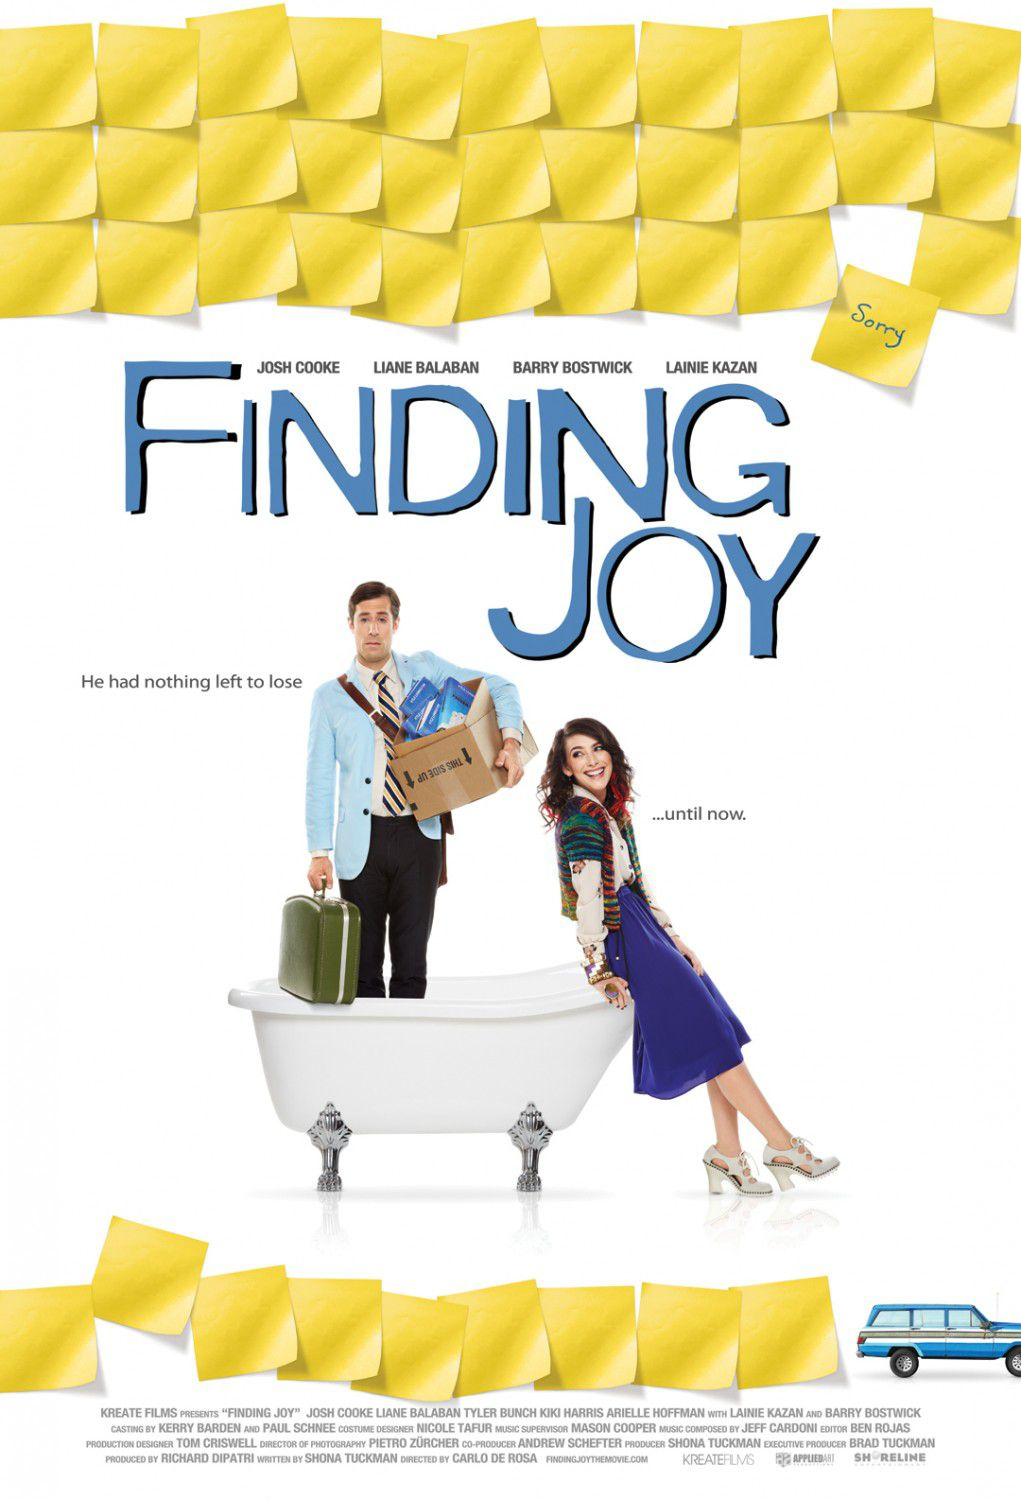 Finding Joy ... sometimes things fall apart so others can fall together. He had nothing left to lose, until now - Josh Cooke - Liane Balaban - Barry Bostwick - Lainie Kazan - film poster